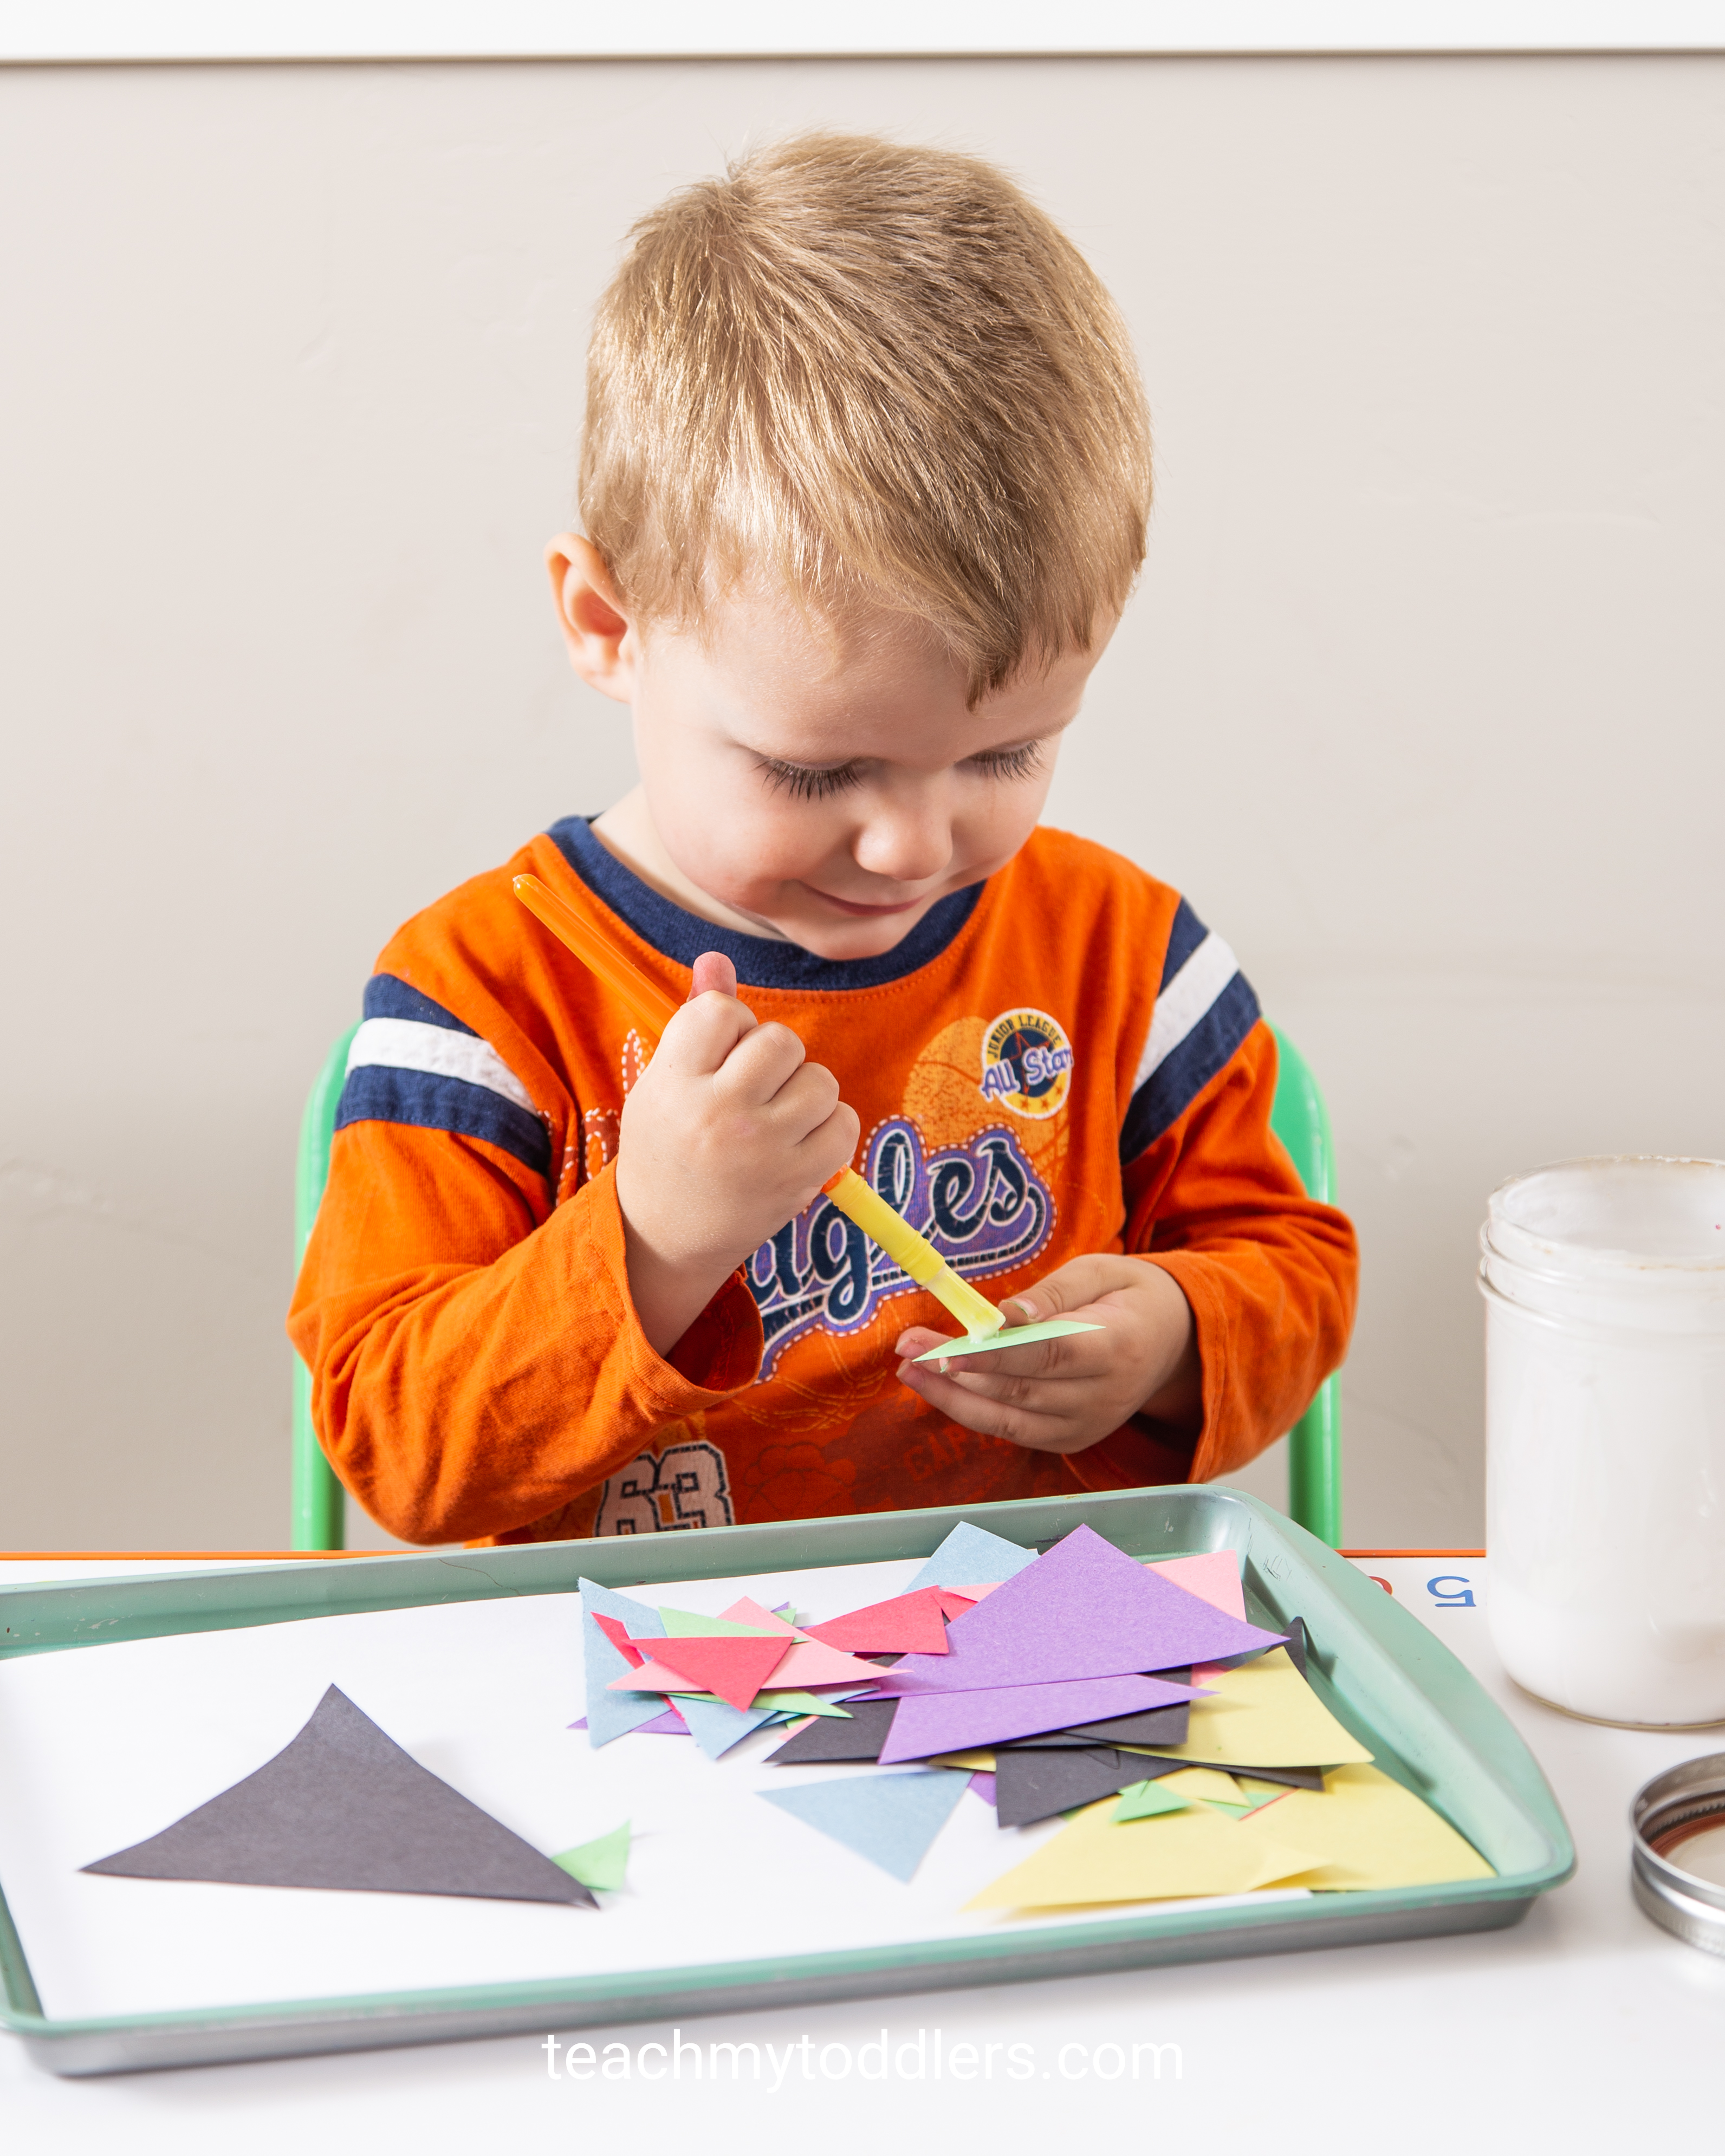 Use these great triangle trays to teach your toddlers shapes